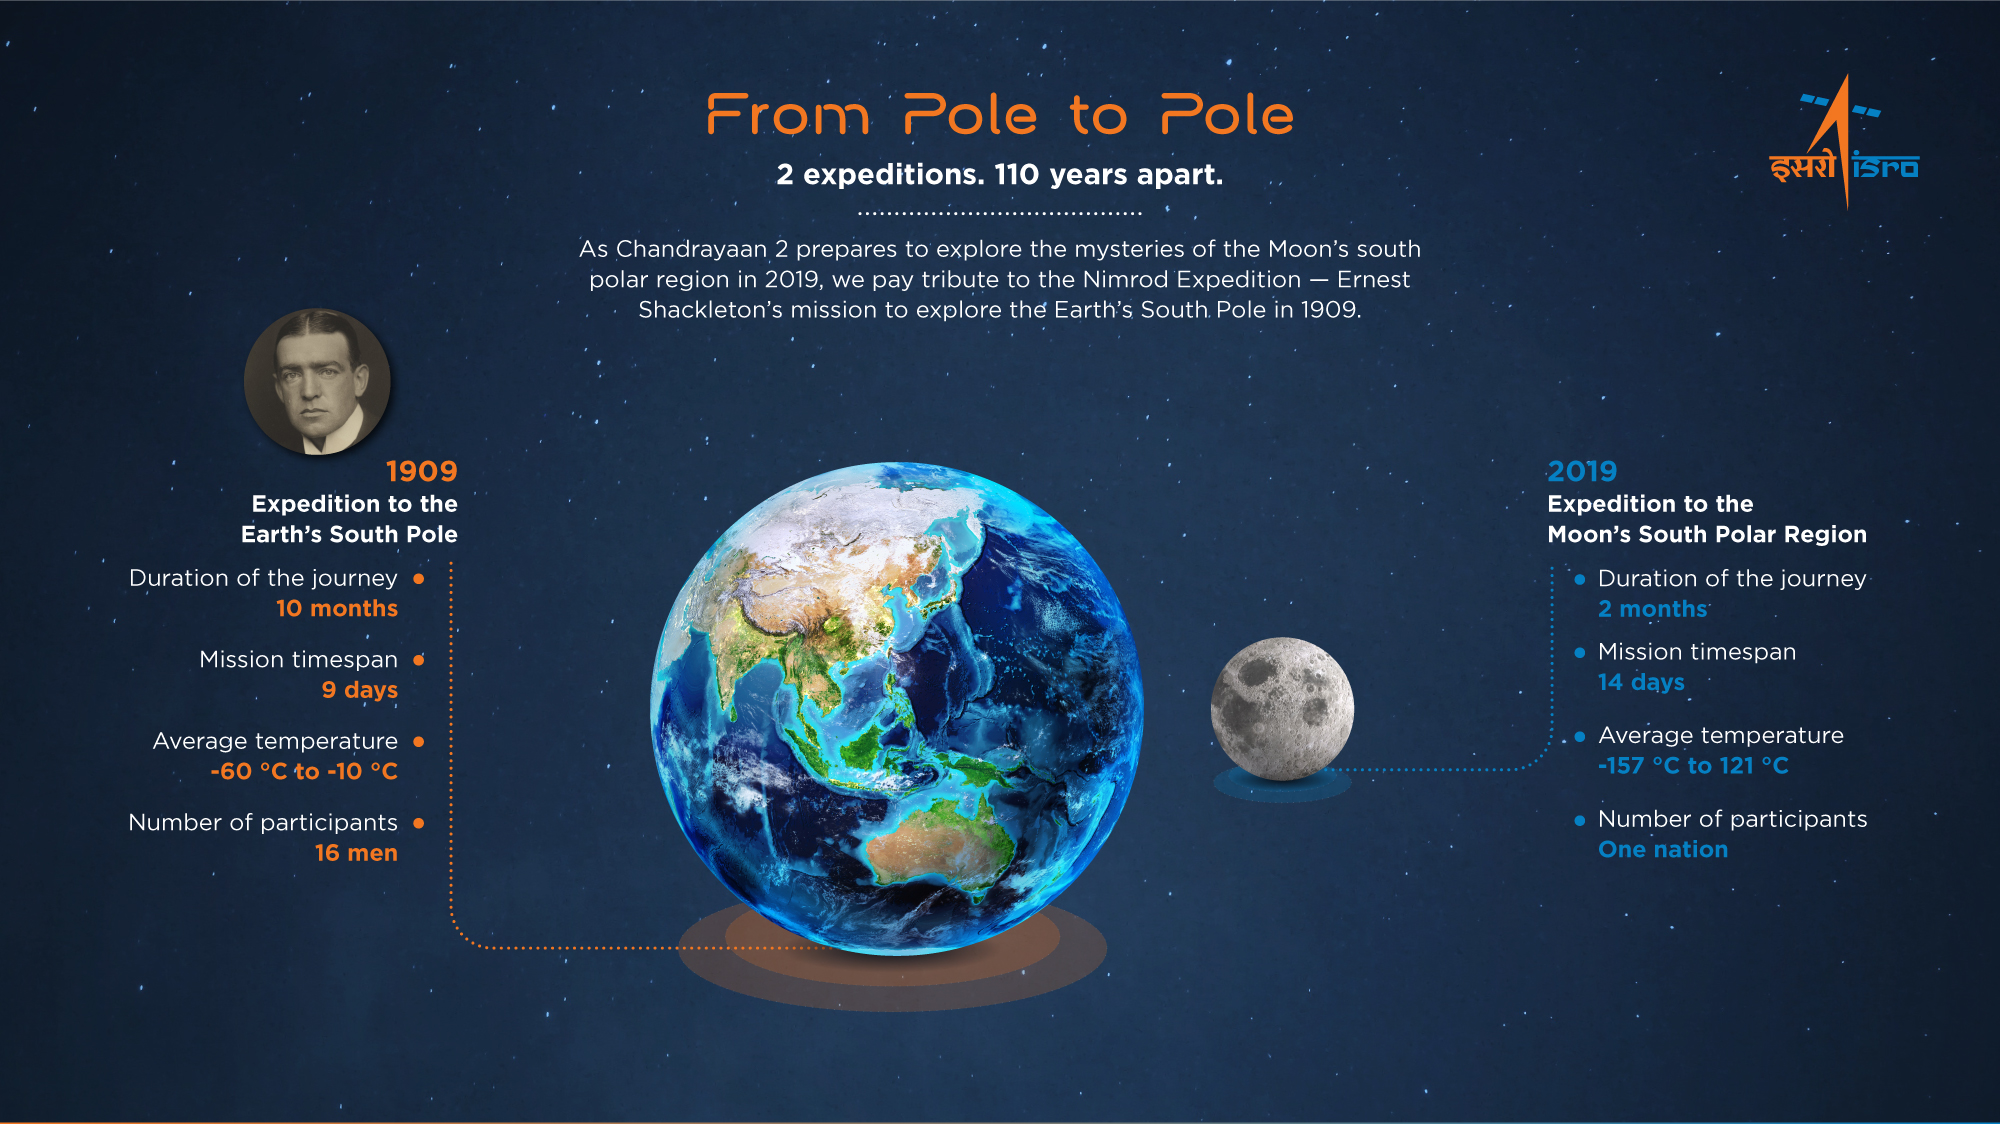 Chandrayaan2 - From Pole to Pole